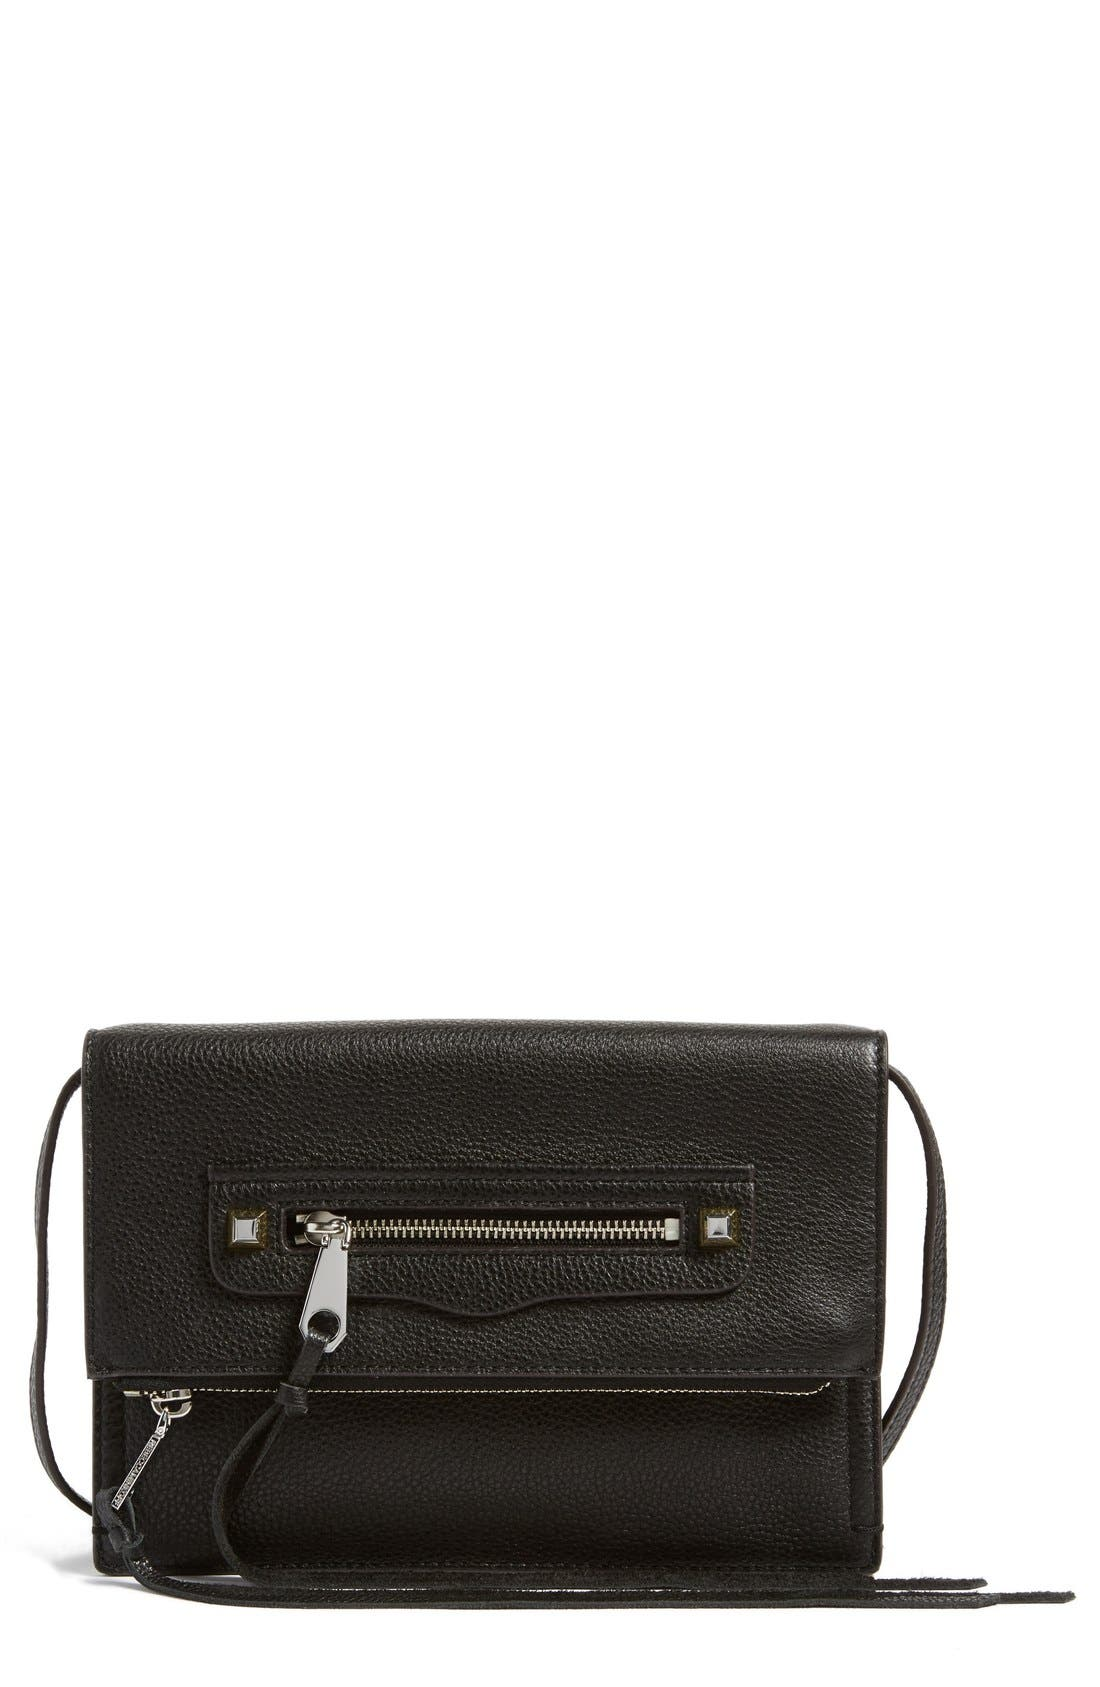 Alternate Image 1 Selected - Rebecca Minkoff Small Regan Crossbody Clutch